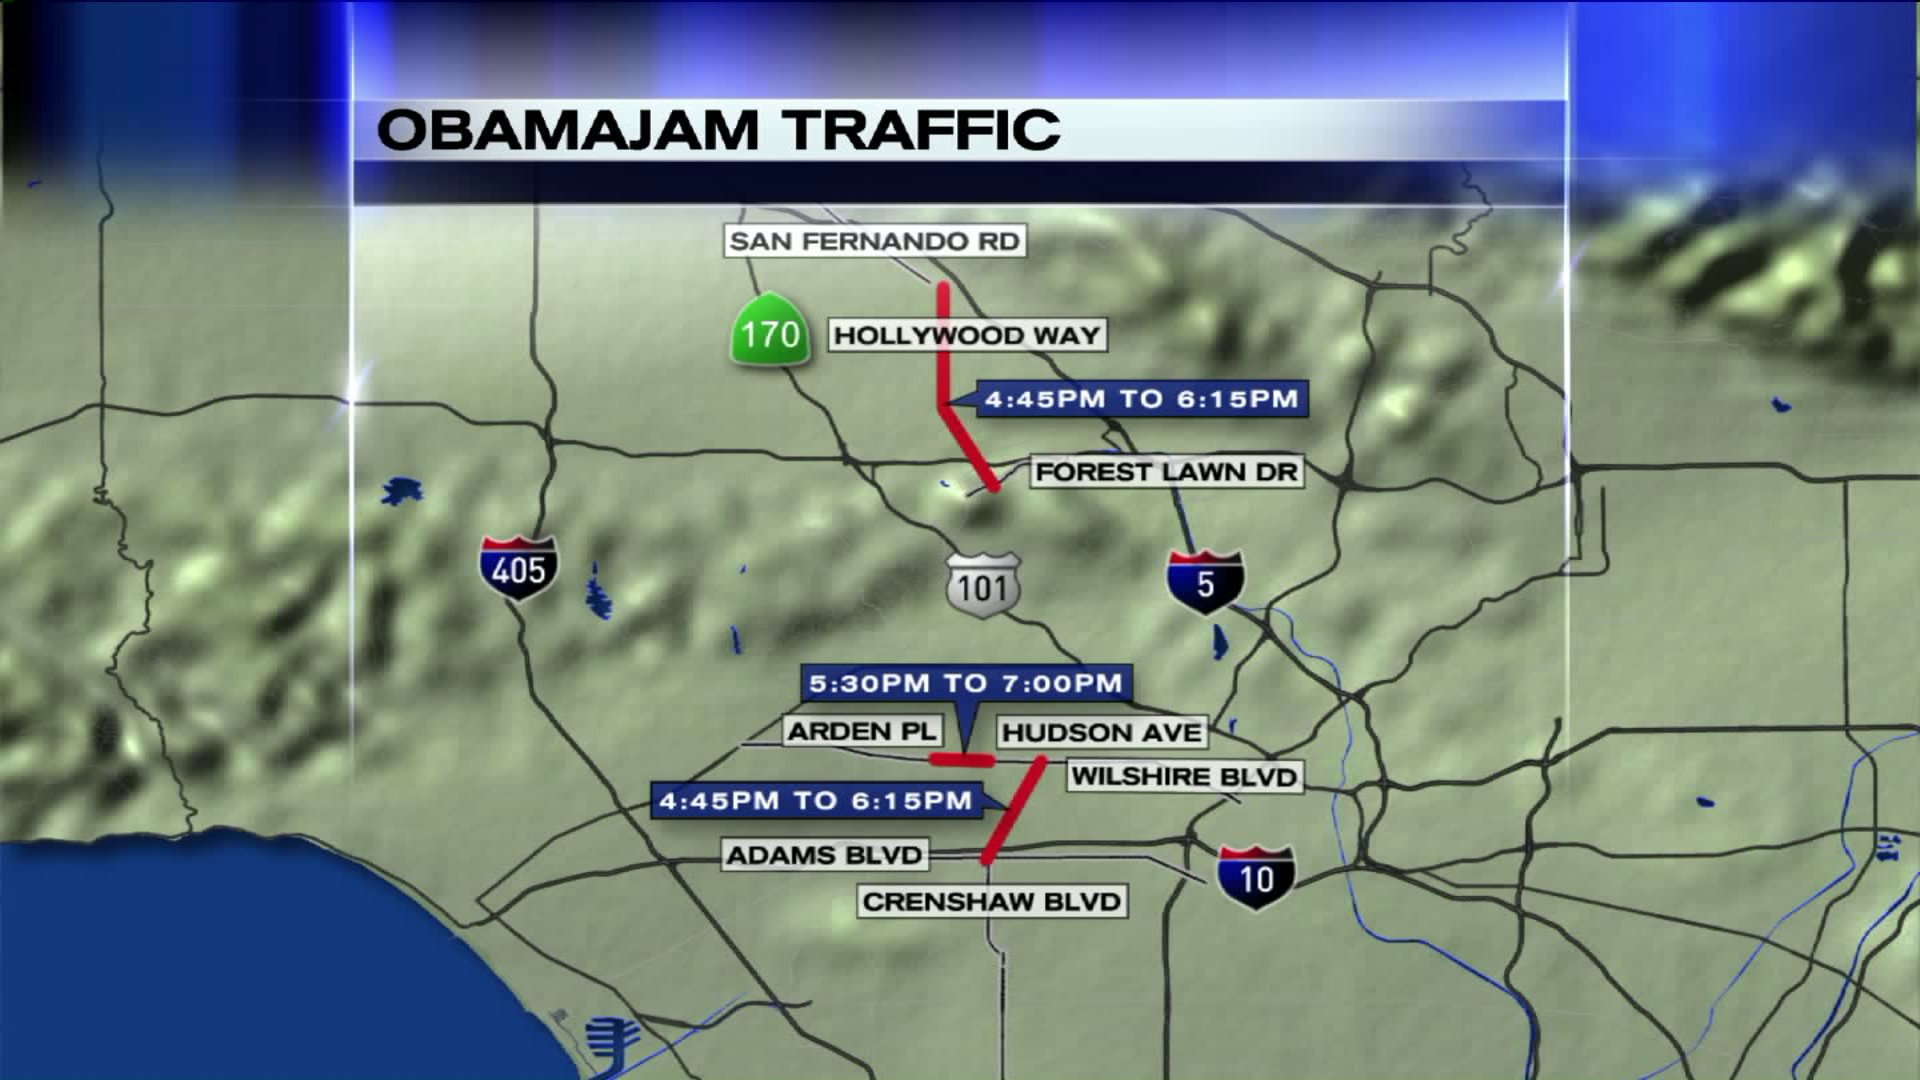 A map shows some of the areas to avoid during the president's planned trip to the Los Angeles area Thursday. (Credit: KTLA)